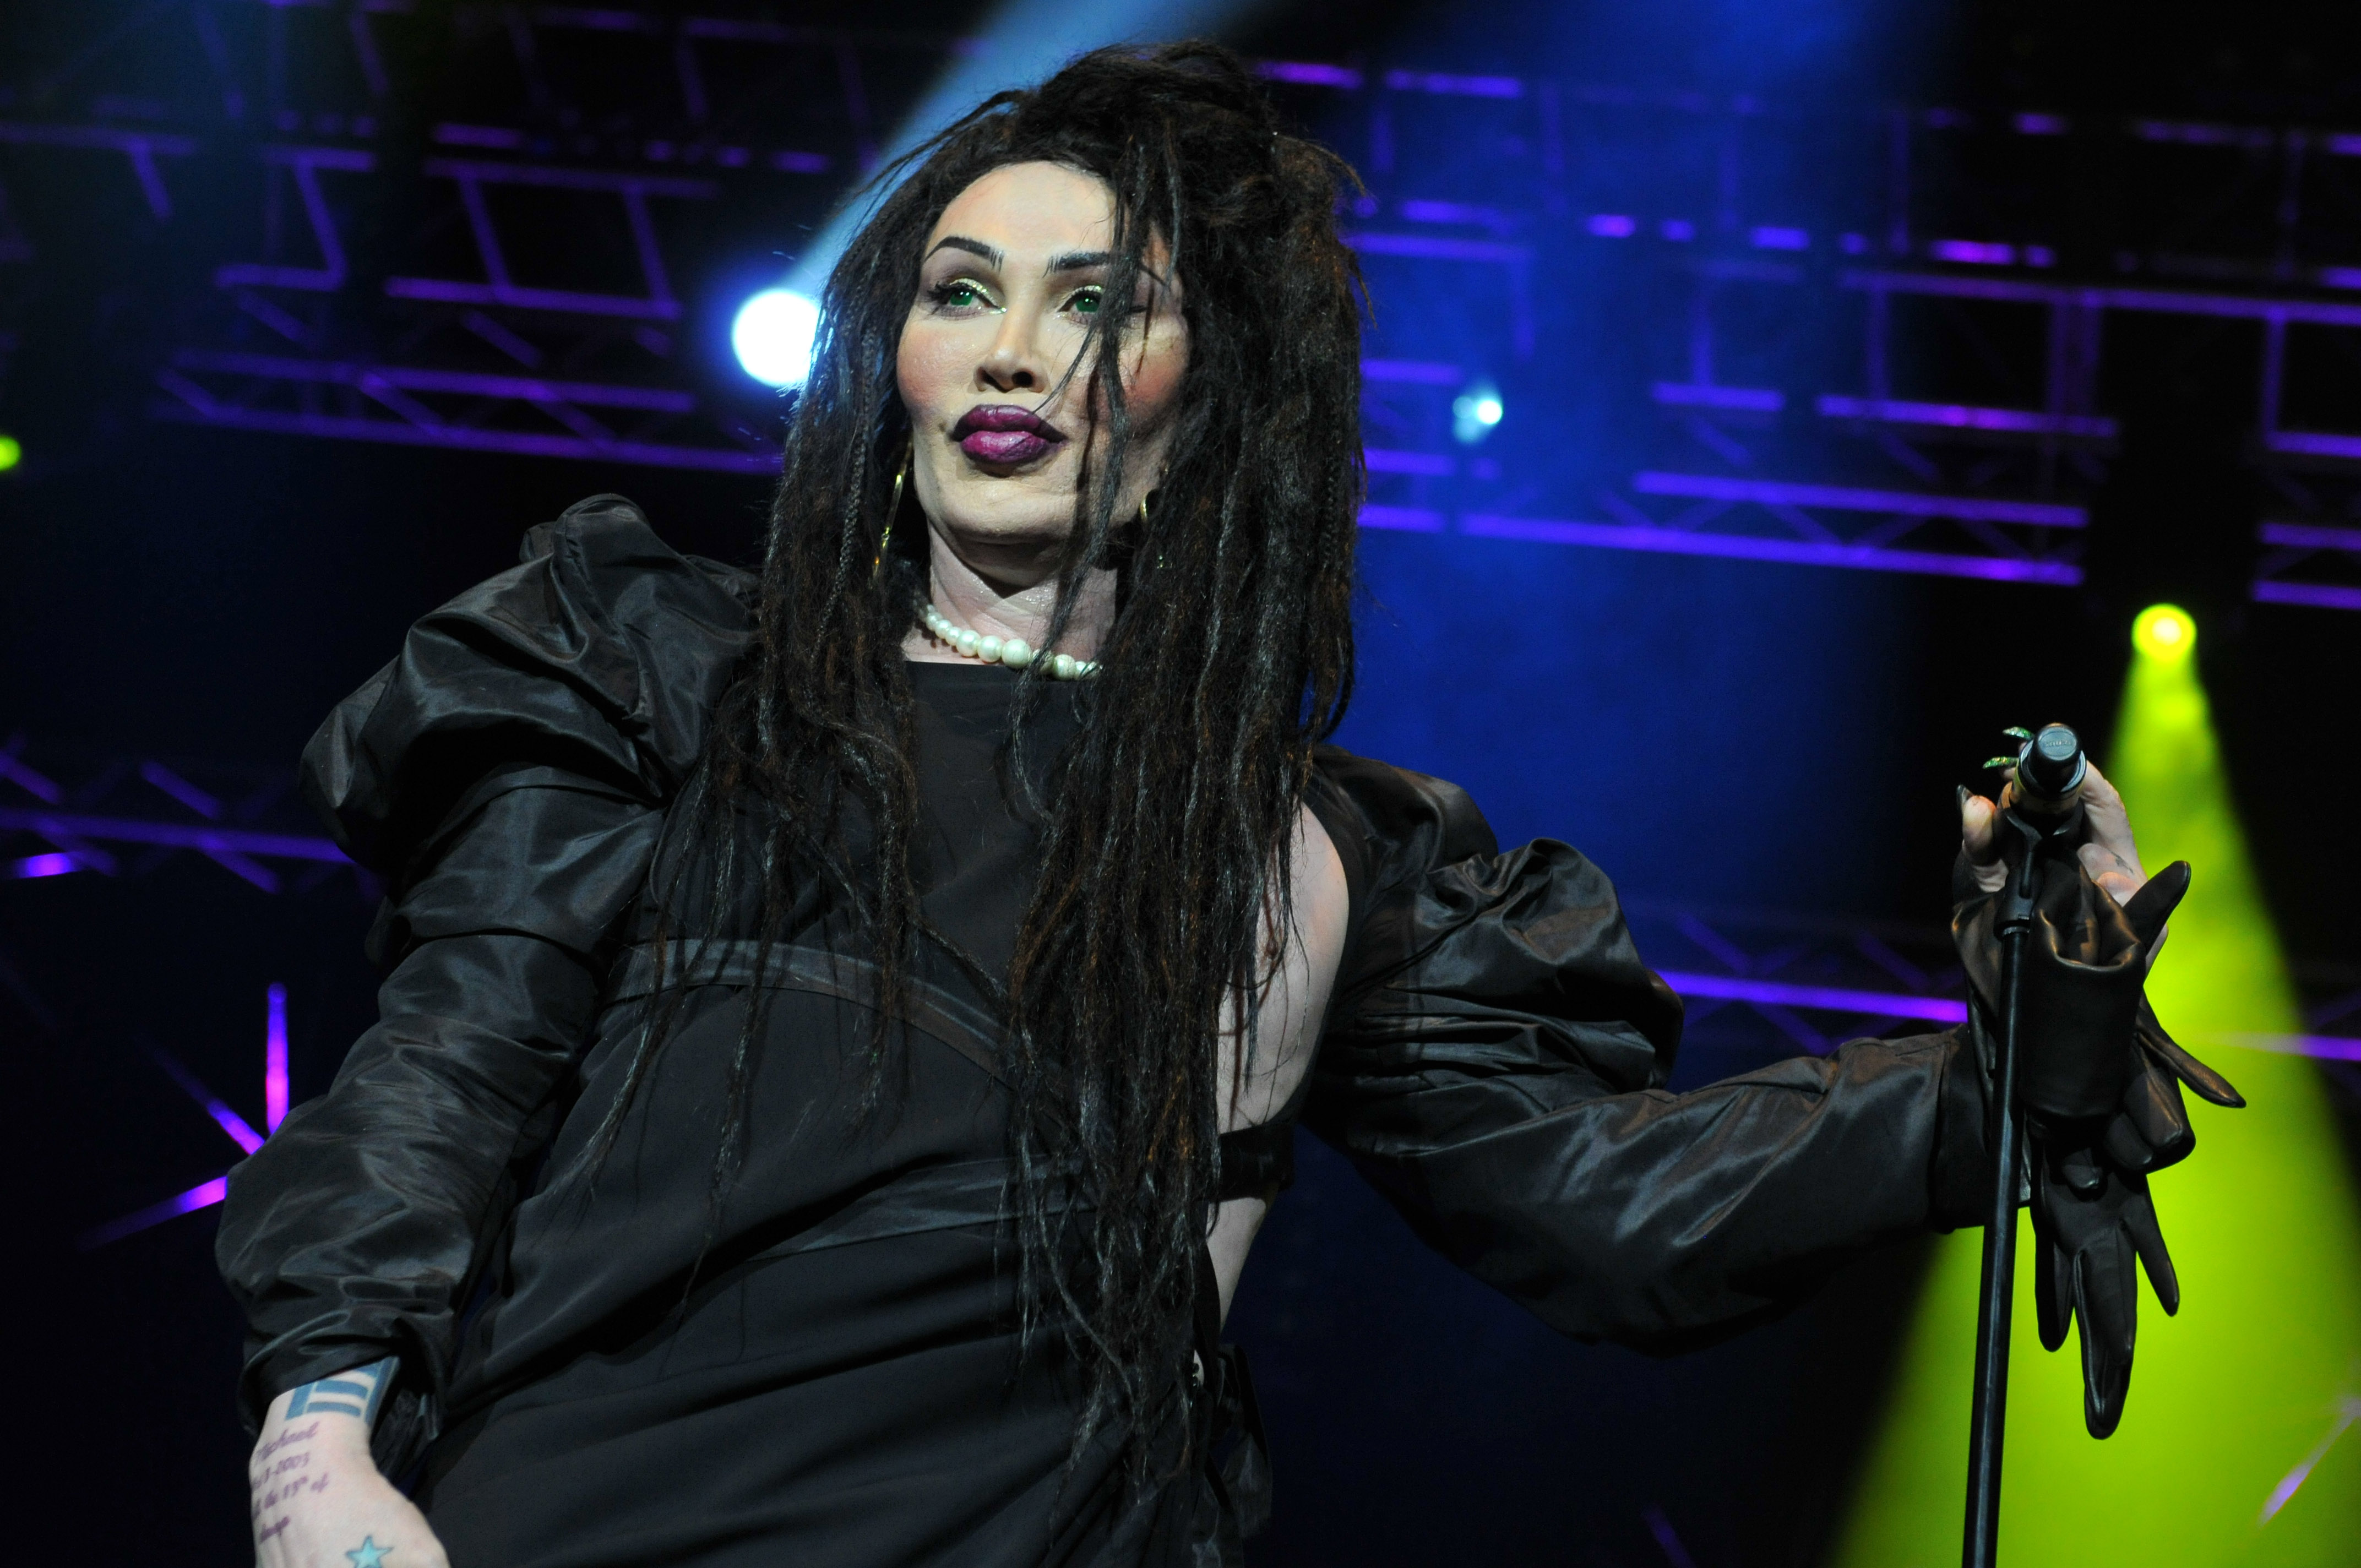 Pete Burns has died aged 57 (Picture: Redferns via Getty Images)